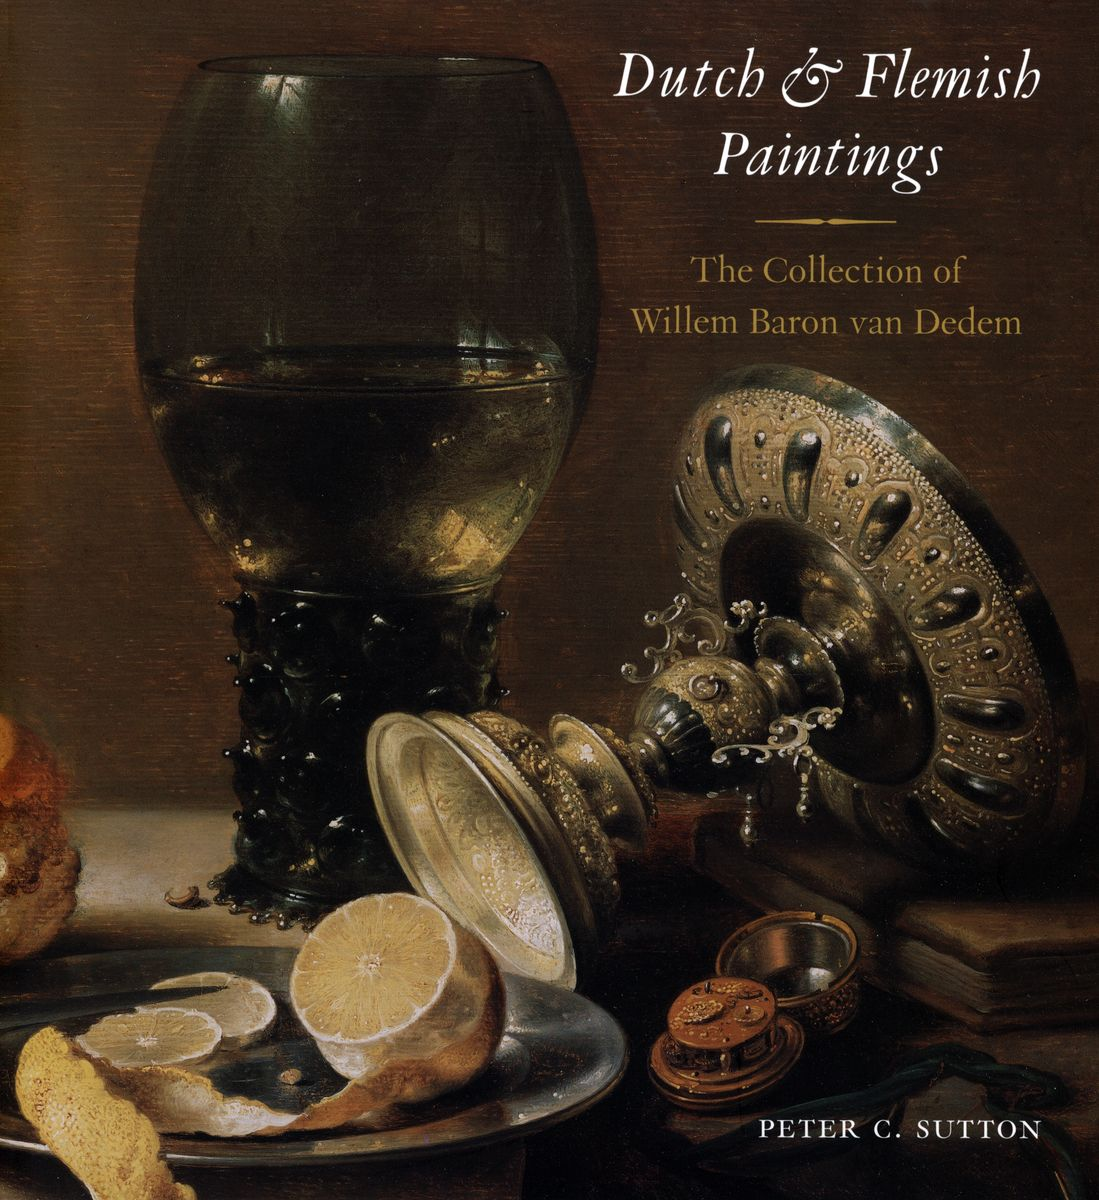 Dutch and Flemish Paintings. The Collection of Willem, Baron Van Dedem по 3 927.00 руб от изд. Flammarion